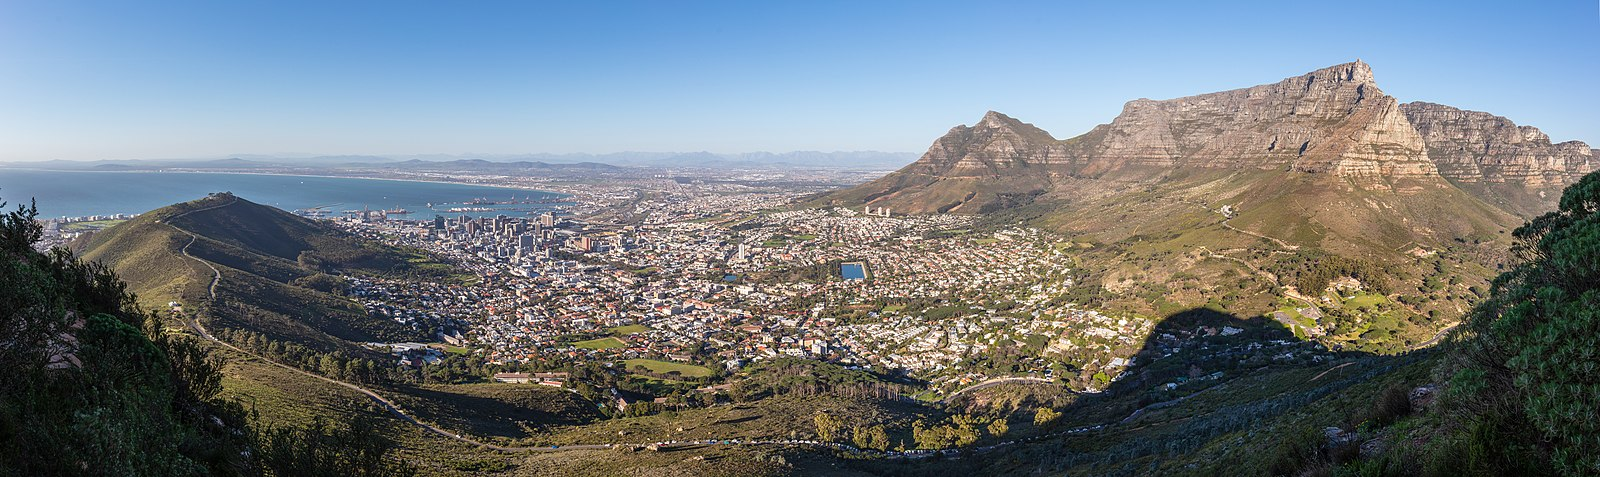 "Cape Town's ""City Bowl"" viewed from Lion's Head in May (late autumn) Ciudad del Cabo desde Cabeza de Leon, Sudafrica, 2018-07-22, DD 20-23 PAN.jpg"